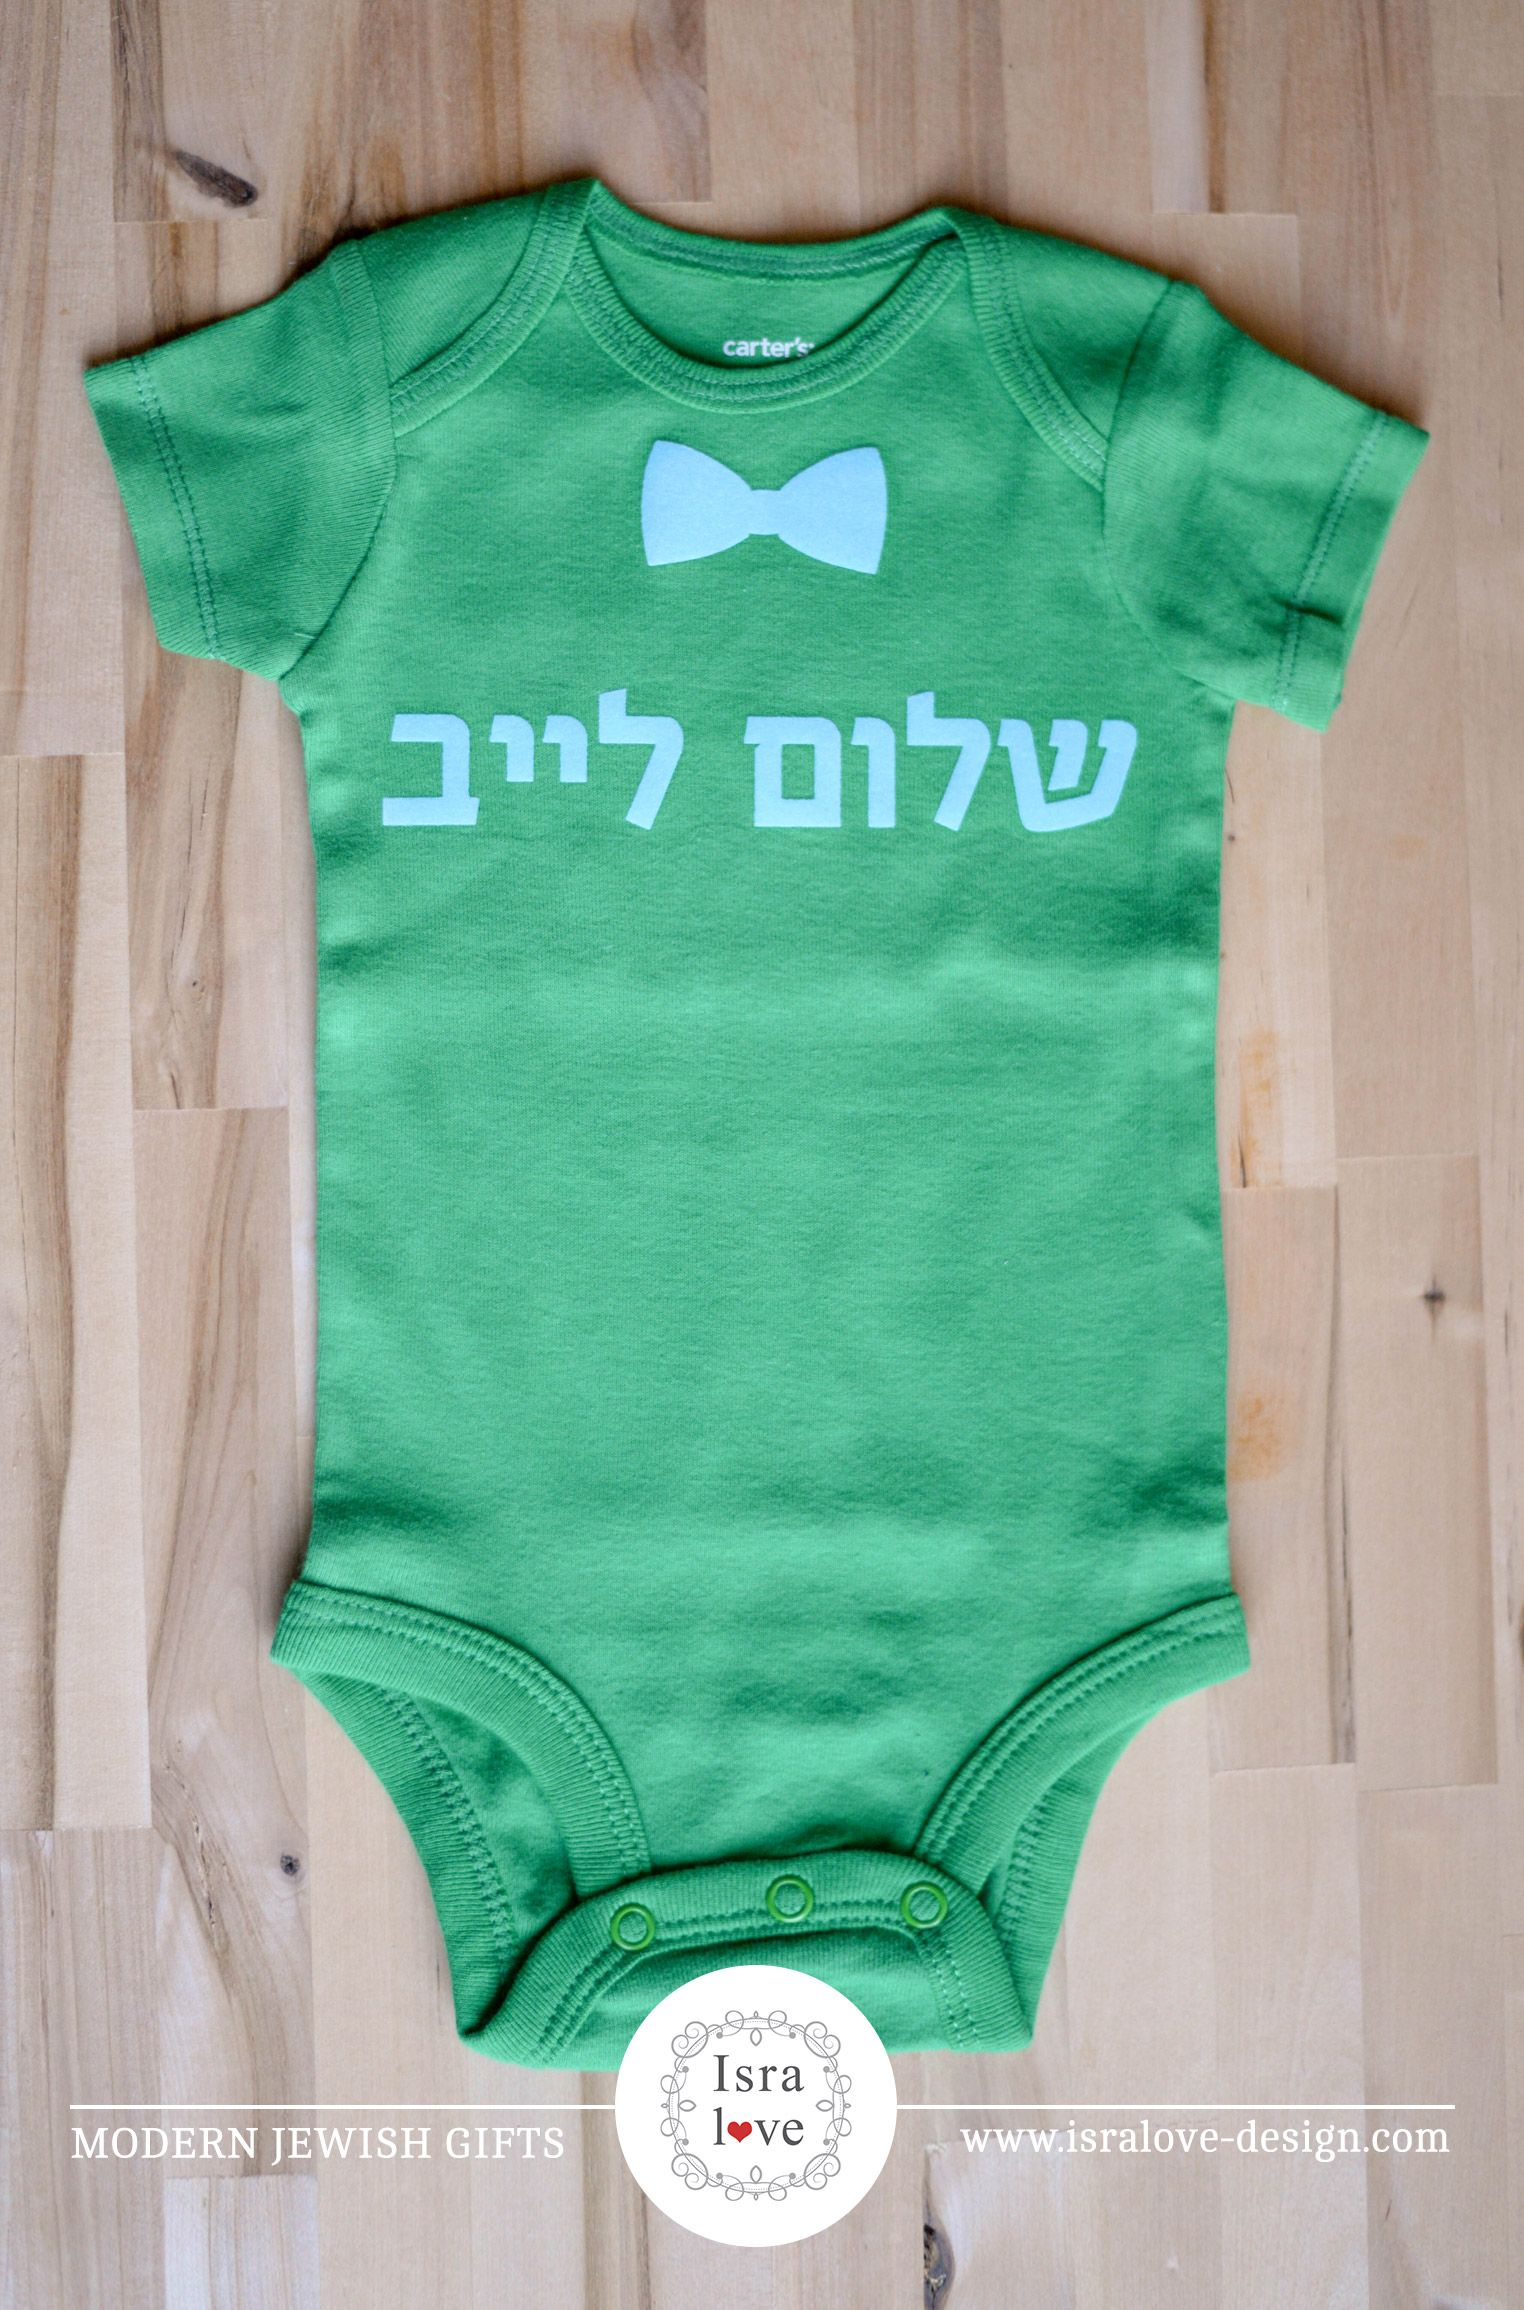 The perfect jewish naming gift personalized hebrew name onesie for the perfect jewish naming gift personalized hebrew name onesie for the new baby great negle Choice Image